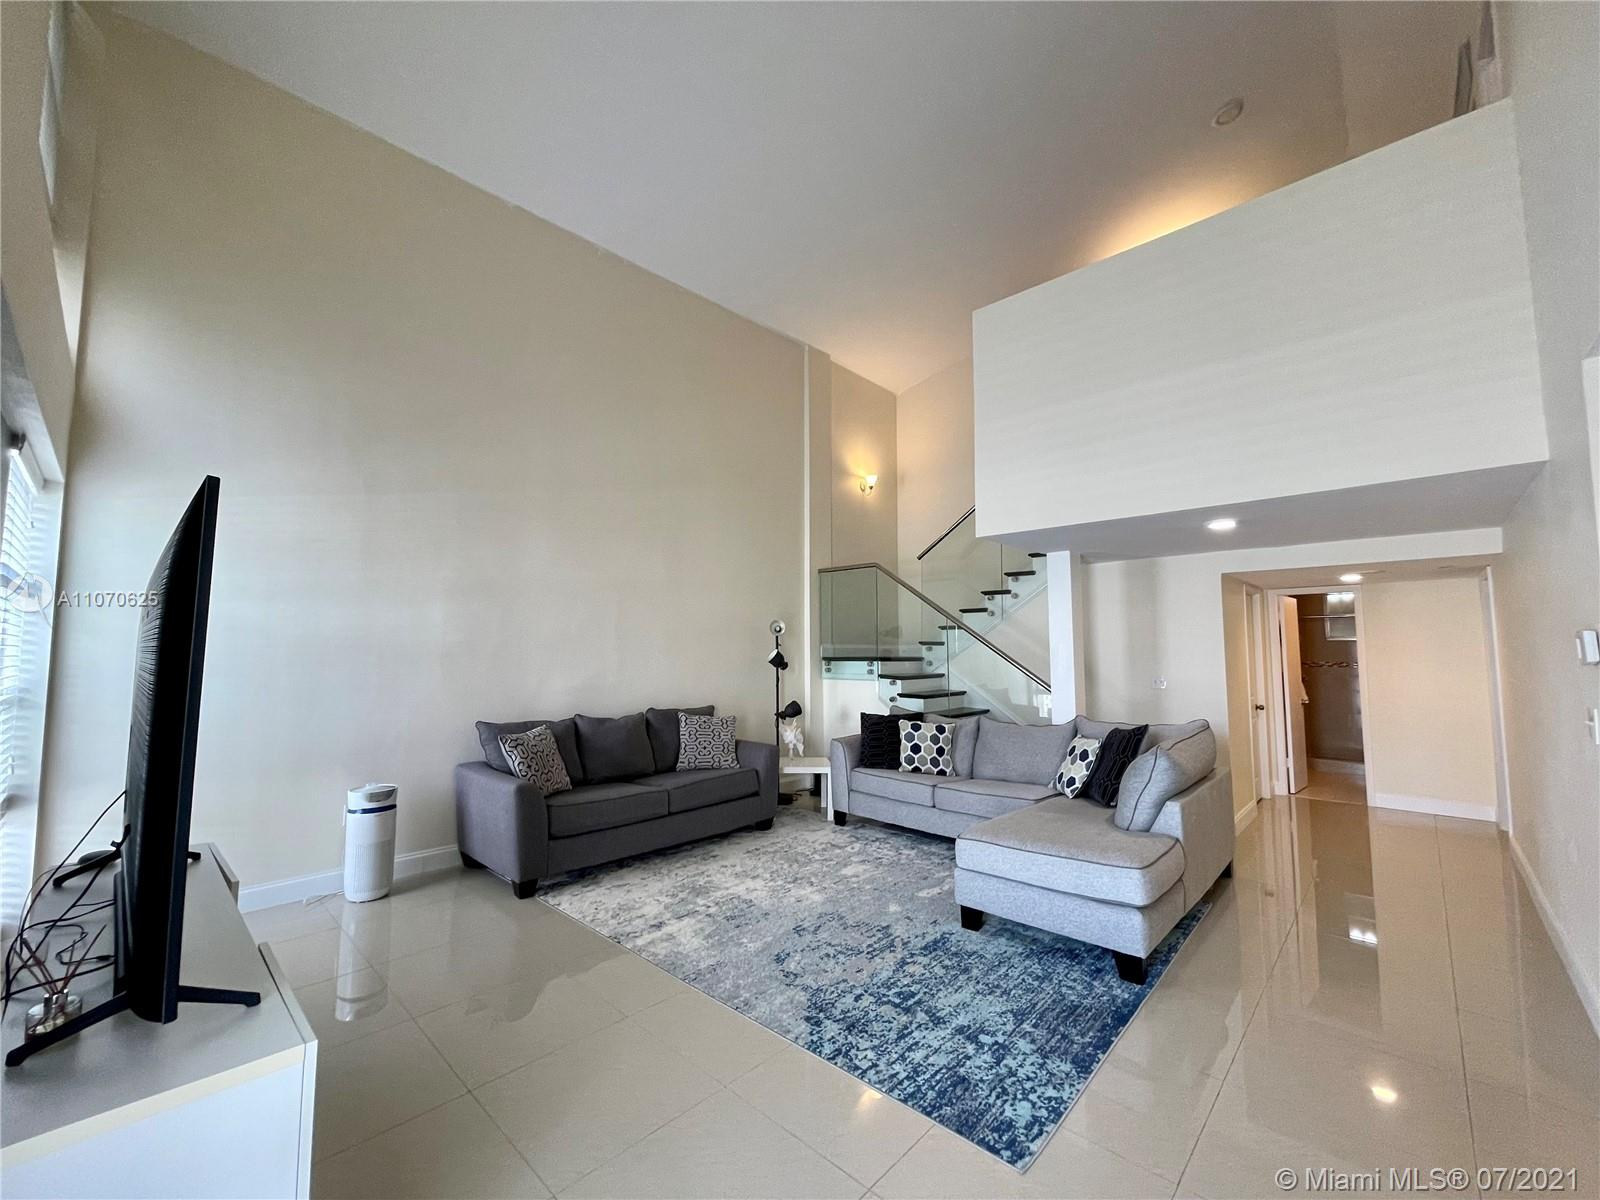 Immaculate, completely upgraded, modern townhome in the heart of Aventura, w/ breathtaking views of the intercostal waterway & skyline. The home features a new roof (2019), soaring 18 ft cathedral ceiling, double master suites upstairs, den downstairs large enough to be a third master bedroom, loft, modern glass stair rails, high polished imported porcelain tiles. Big upgraded kitchen, w/ double pantry, real wood cabinets, granite counters, glass black splash & stainless steel appliances. All bathrooms upgraded. Master bath features an oversize jacuzzi tub & separate water closet. Enclosed patio perfect for entertaining & BBQing. Property amenities include, pools, gazebos, tennis courts, gym, sauna, & billiards room. Water, Sewer, Trash, Internet, & Cable included w/ HOA Fees.